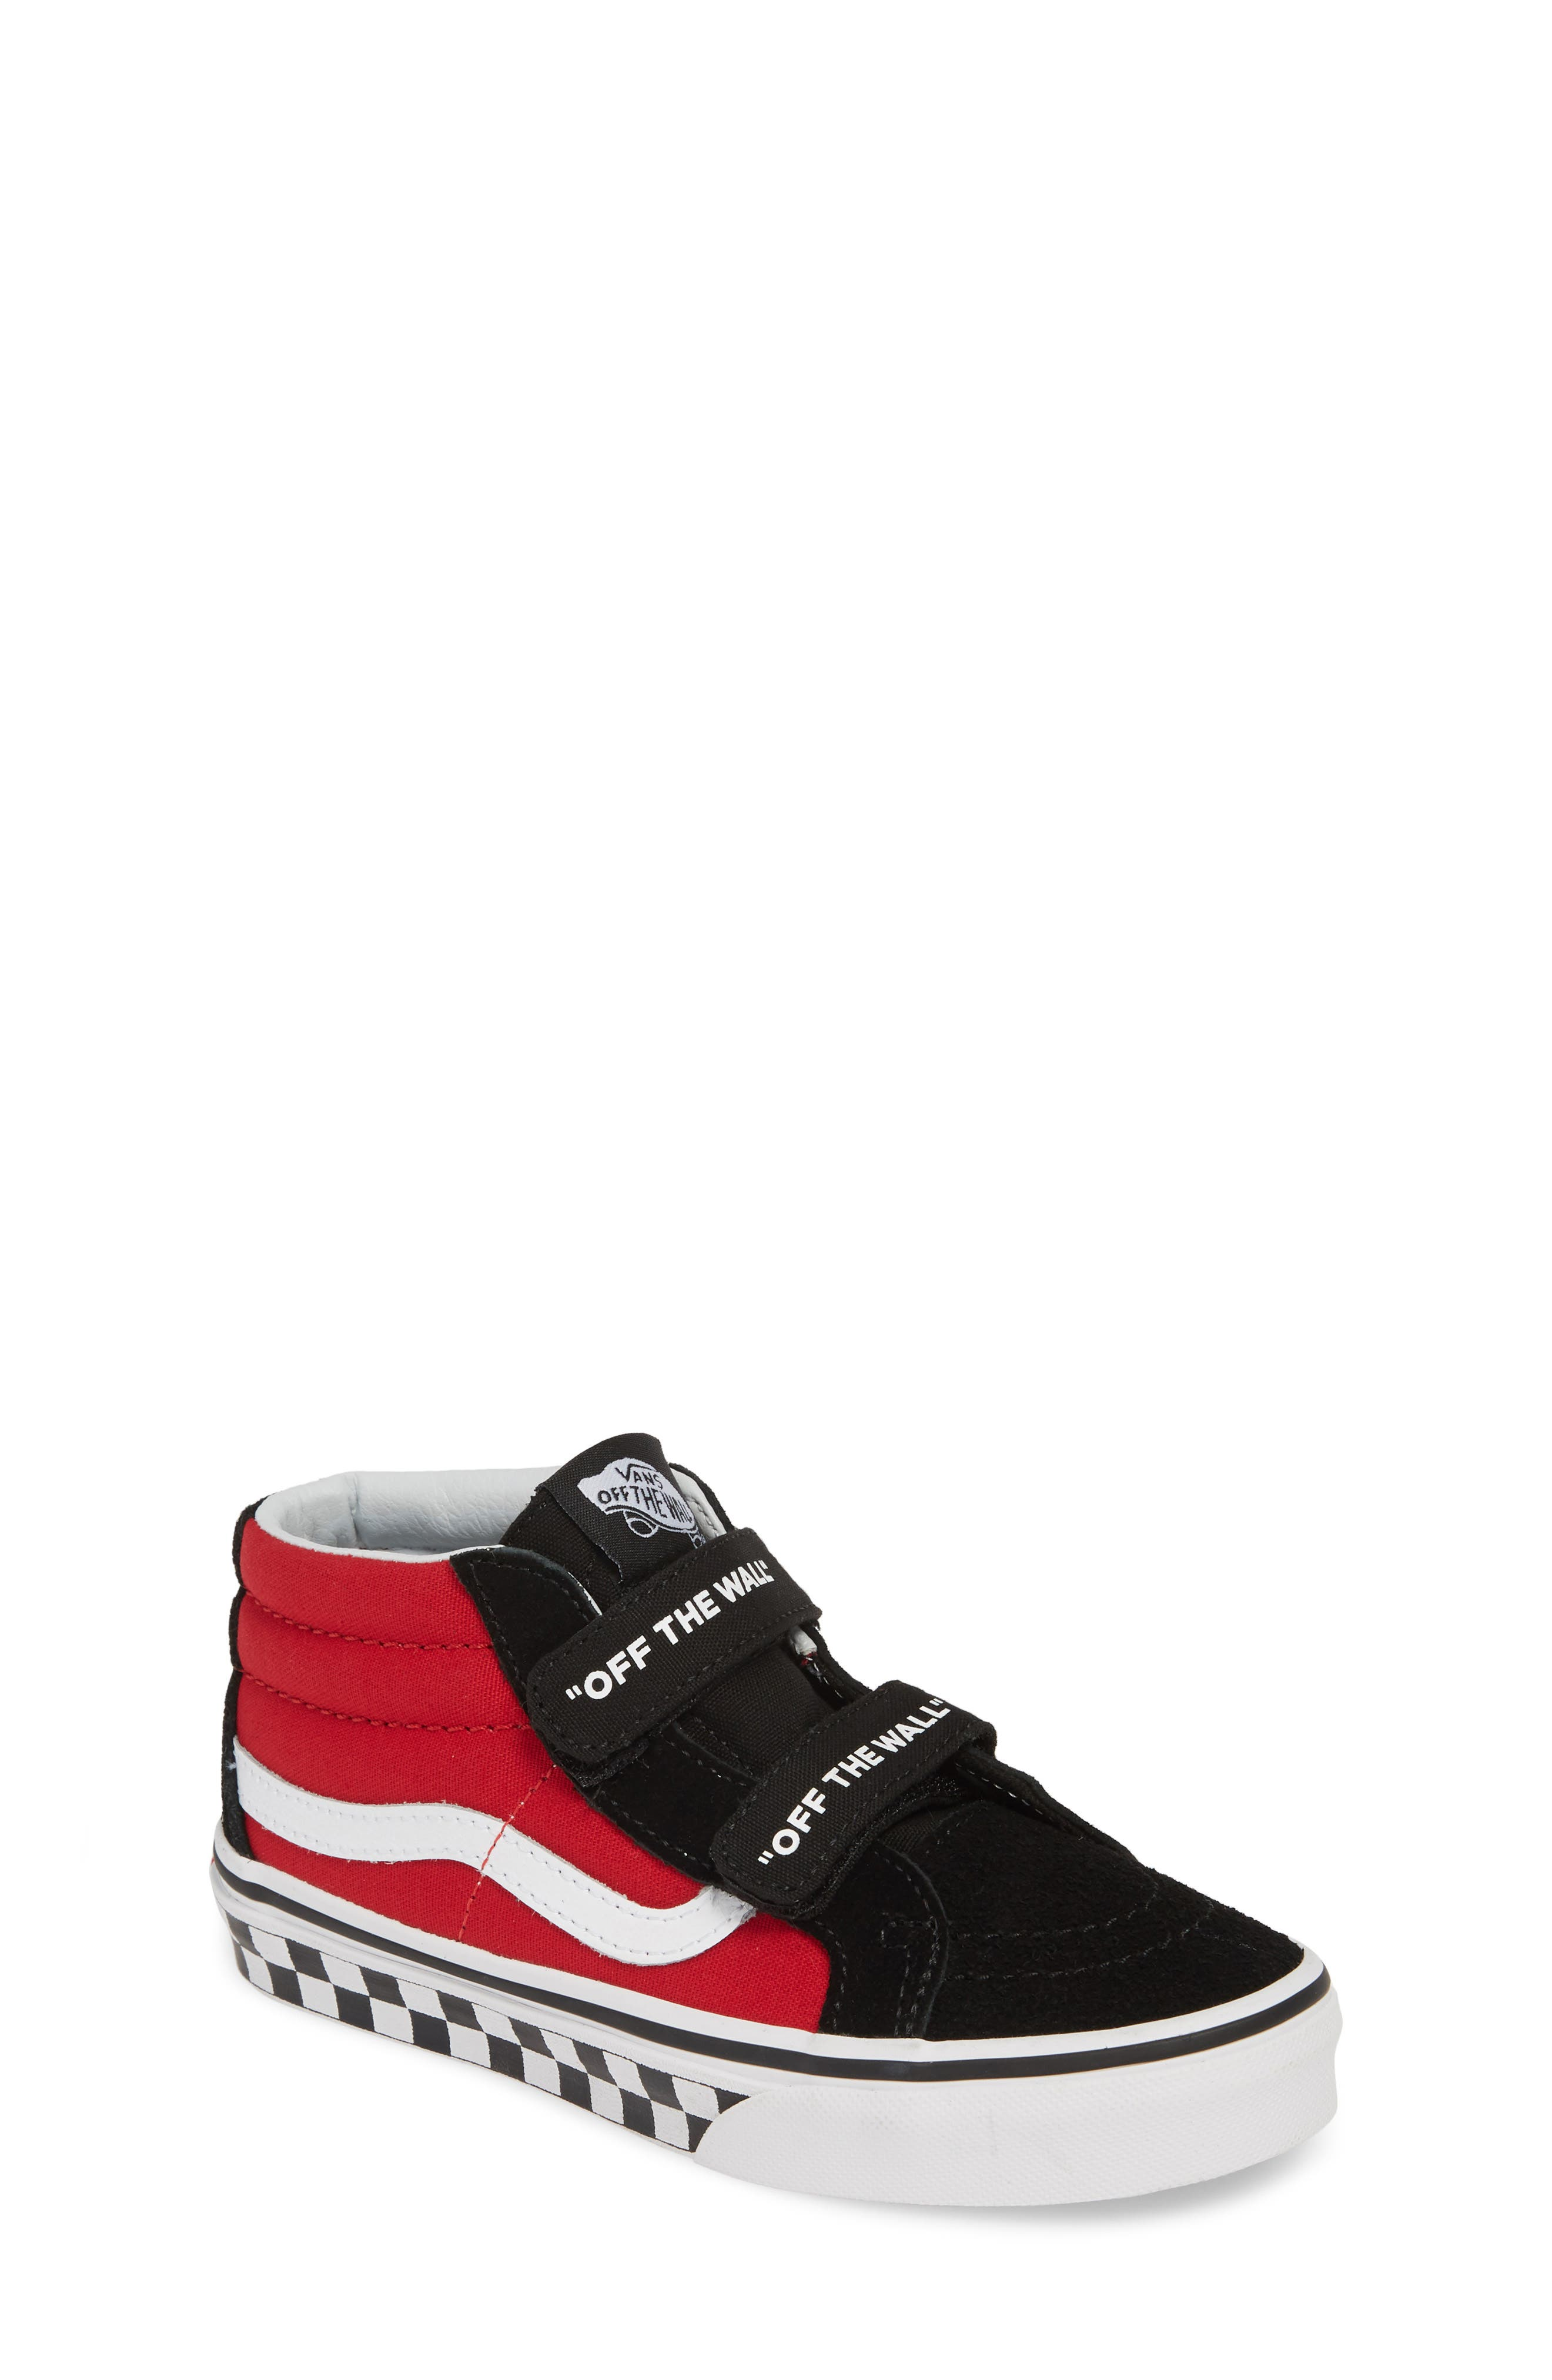 VANS, Sk8-Mid Reissue V Sneaker, Main thumbnail 1, color, LOGO POP BLACK/ TRUE WHITE